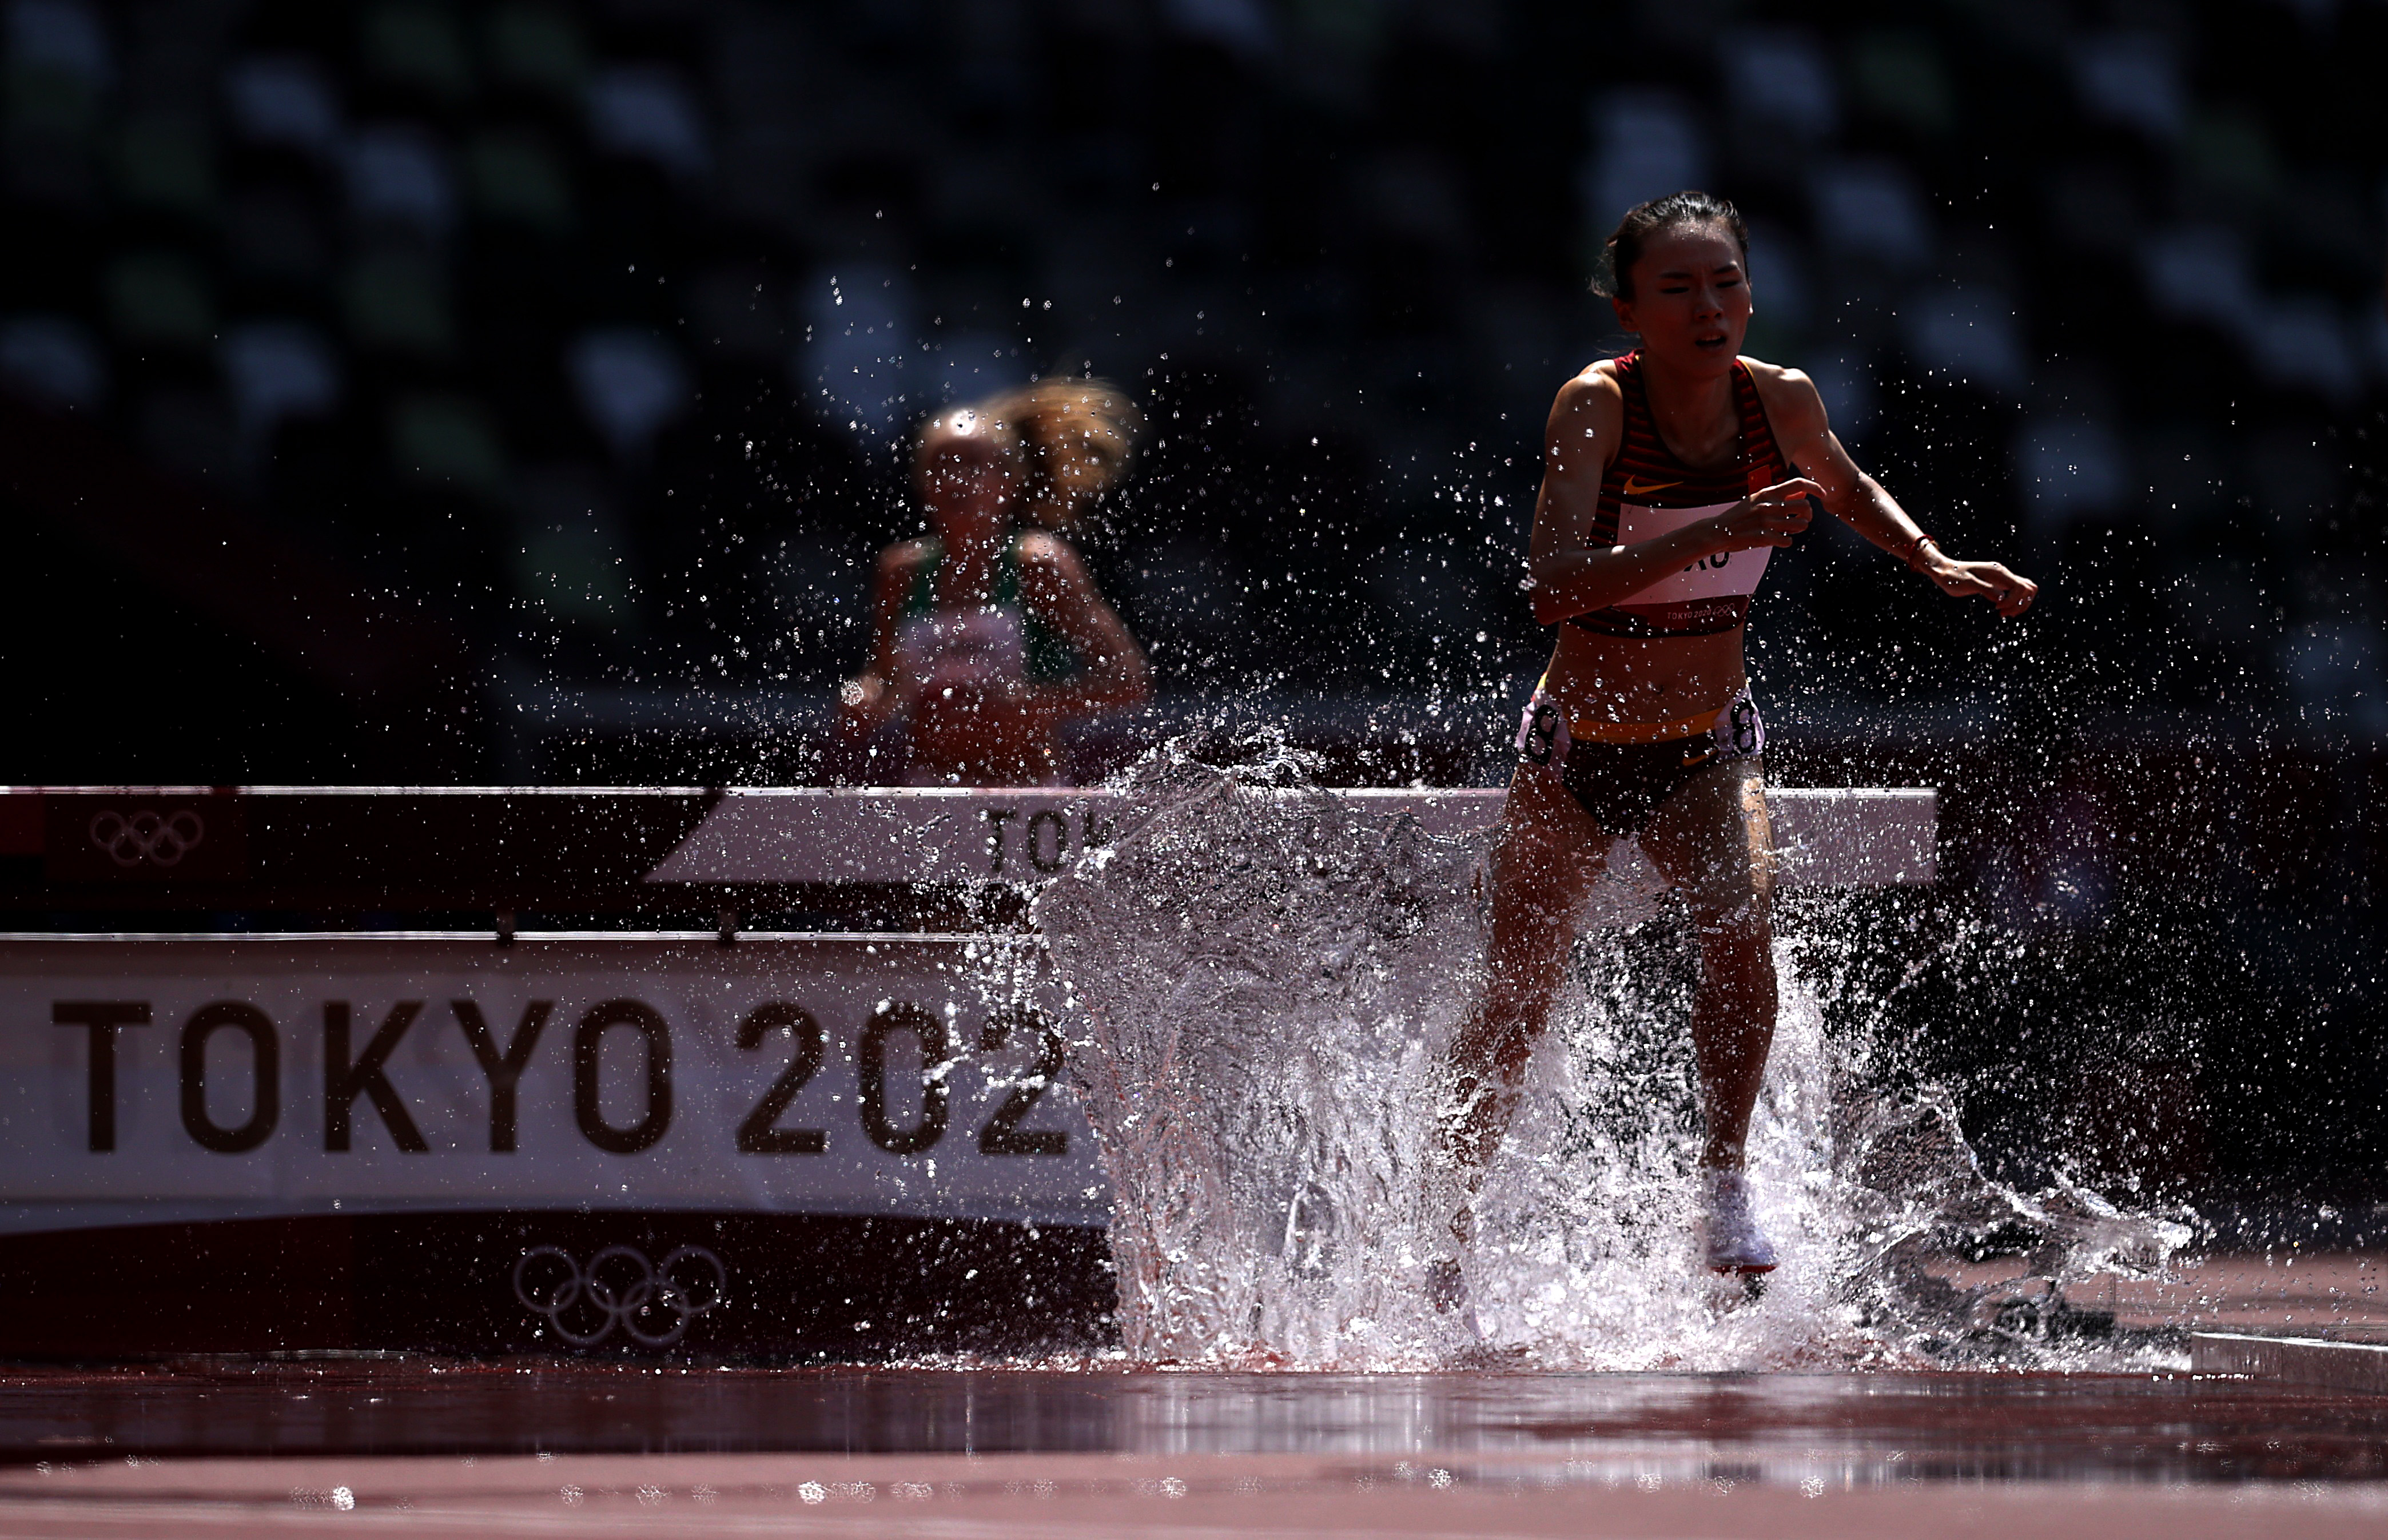 Tokyo 2020 Olympics - Athletics - Women's 3000m Steeplechase - Round 1 - OLS - Olympic Stadium, Tokyo, Japan – August 1, 2021. Xu Shuangshuang of China in action REUTERS/Hannah Mckay